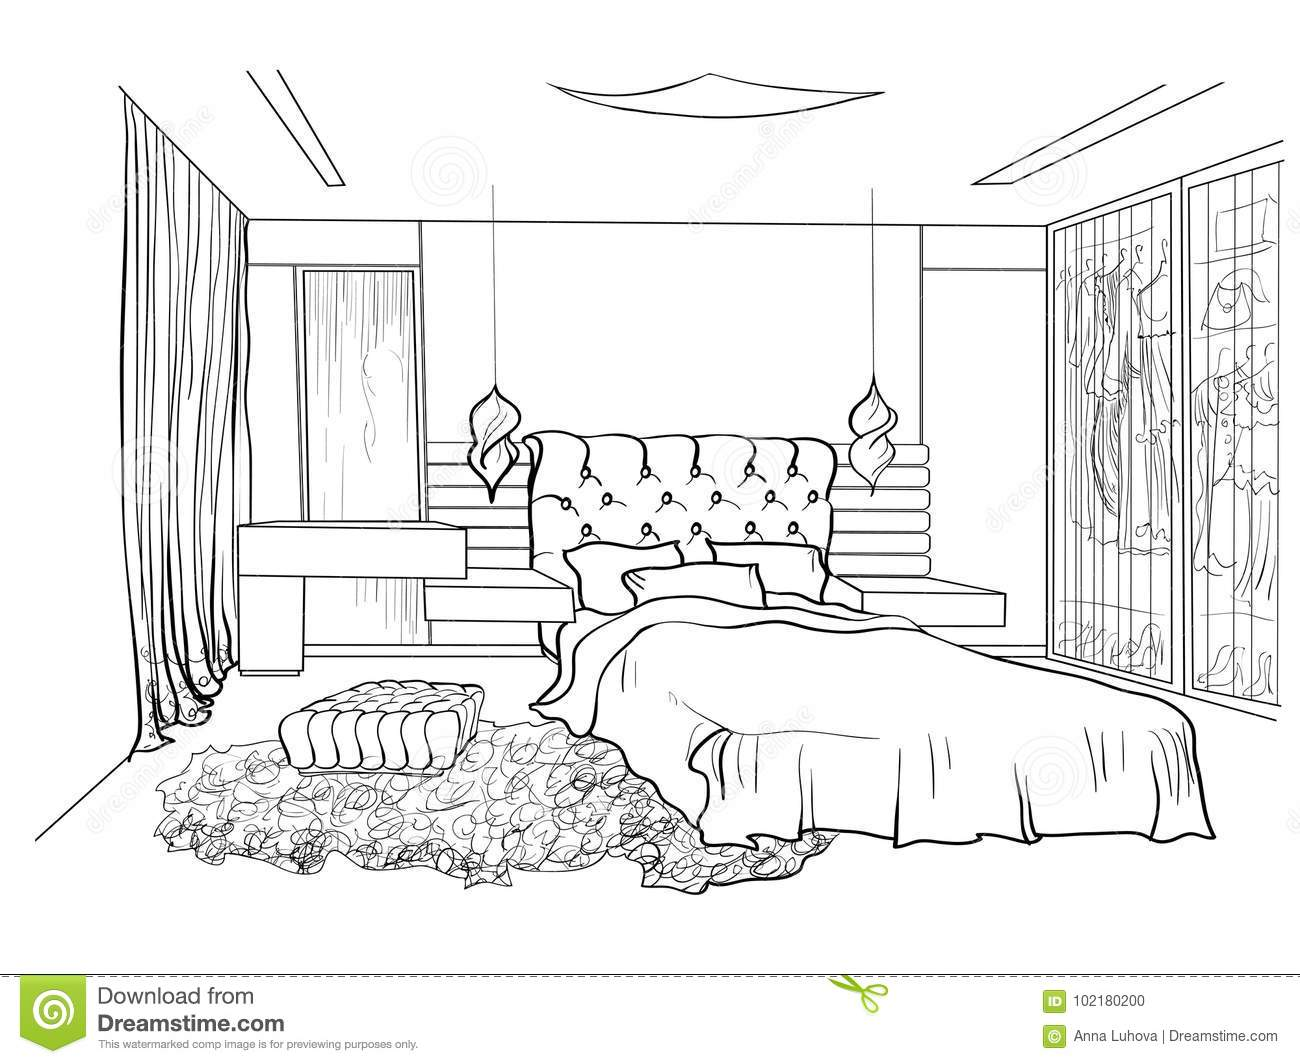 Bedroom design black stock vector. Illustration of house - 11